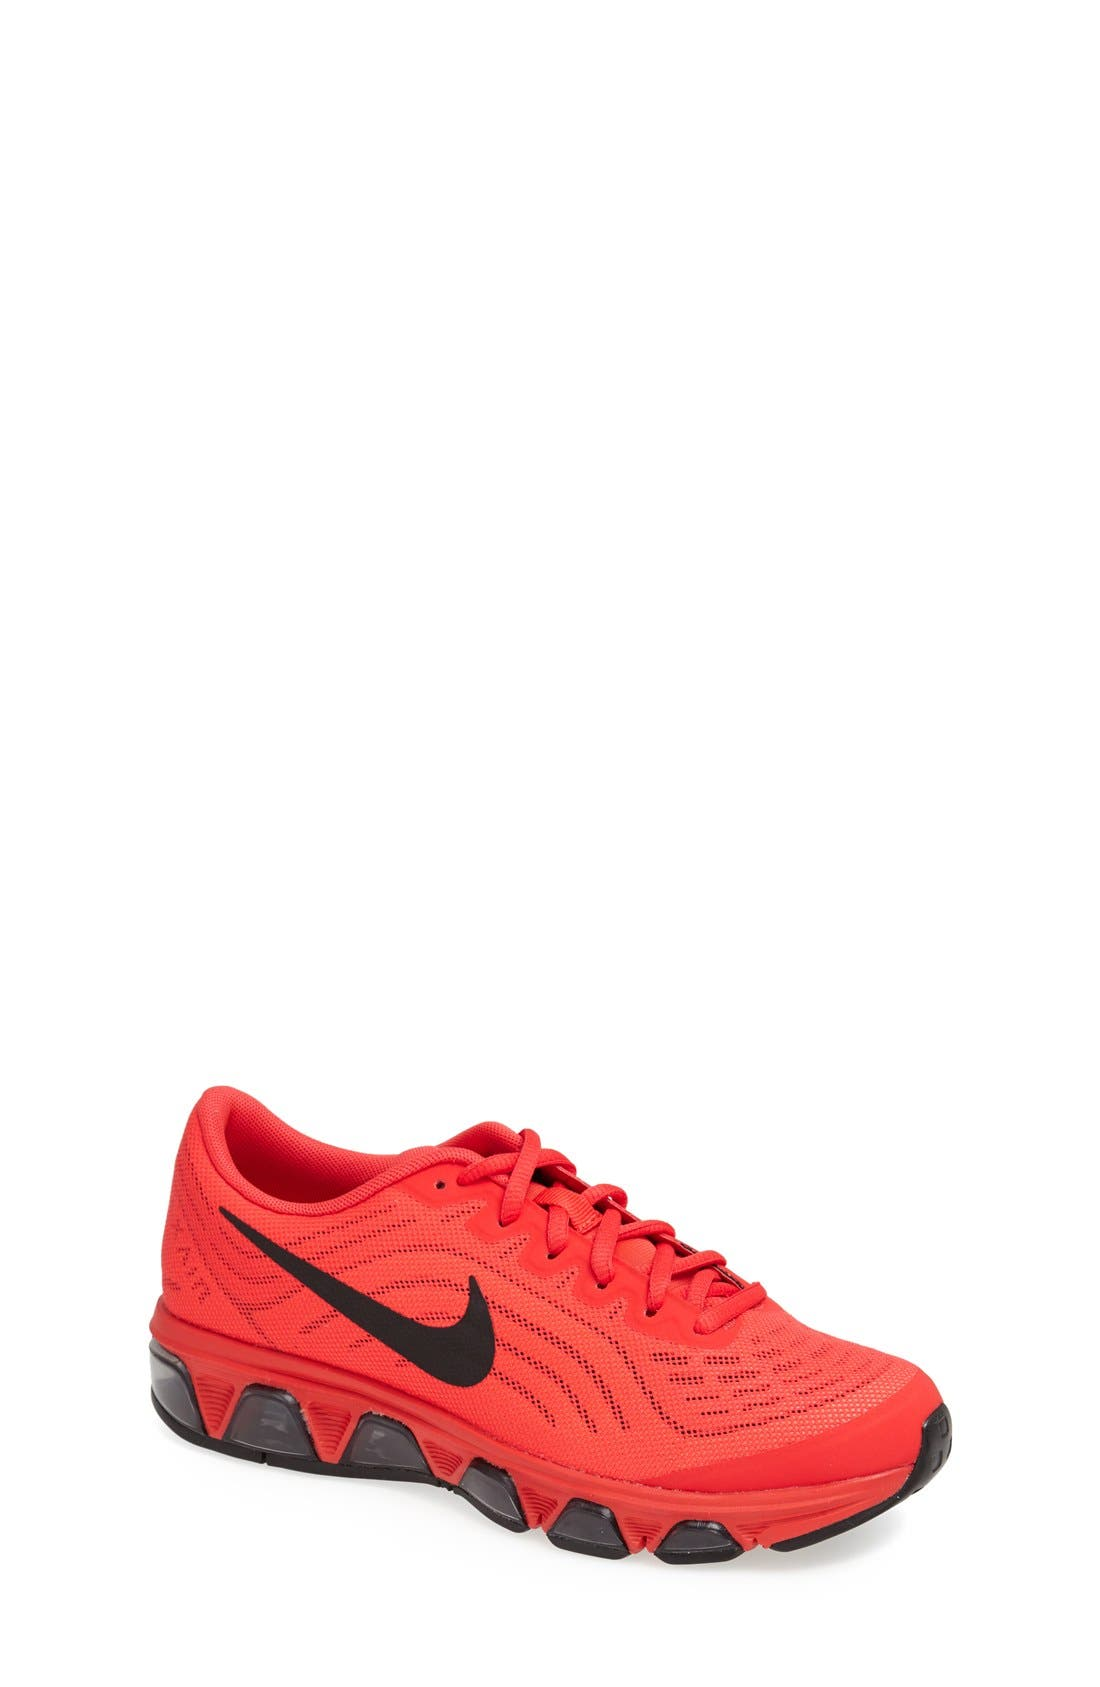 Main Image - Nike 'Air Max Tailwind' Running Shoe (Big Kids)